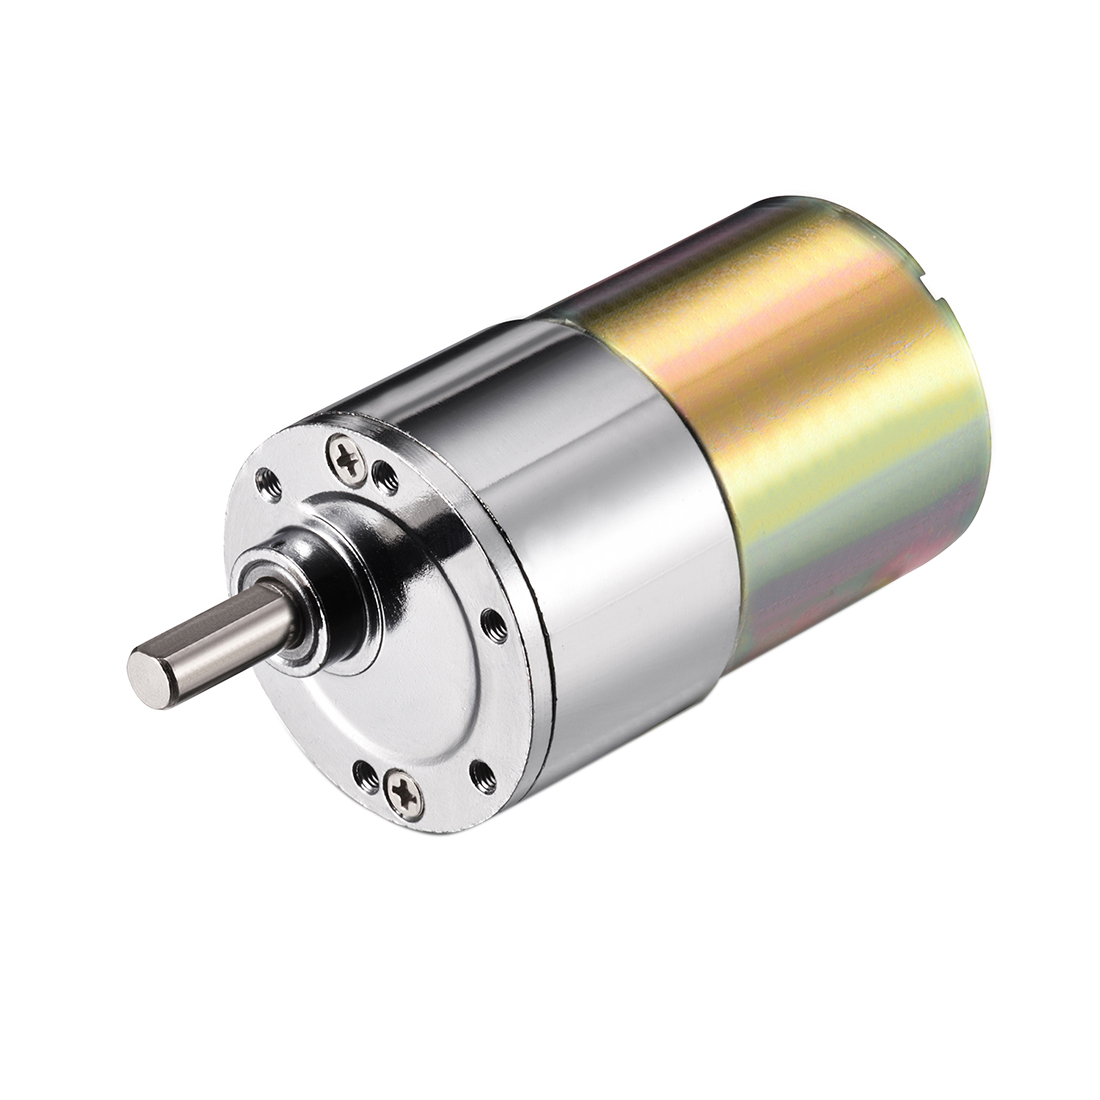 DC 12V 200RPM Micro Gear Box Motor Speed Reduction Electric Gearbox Eccentric Output Shaft